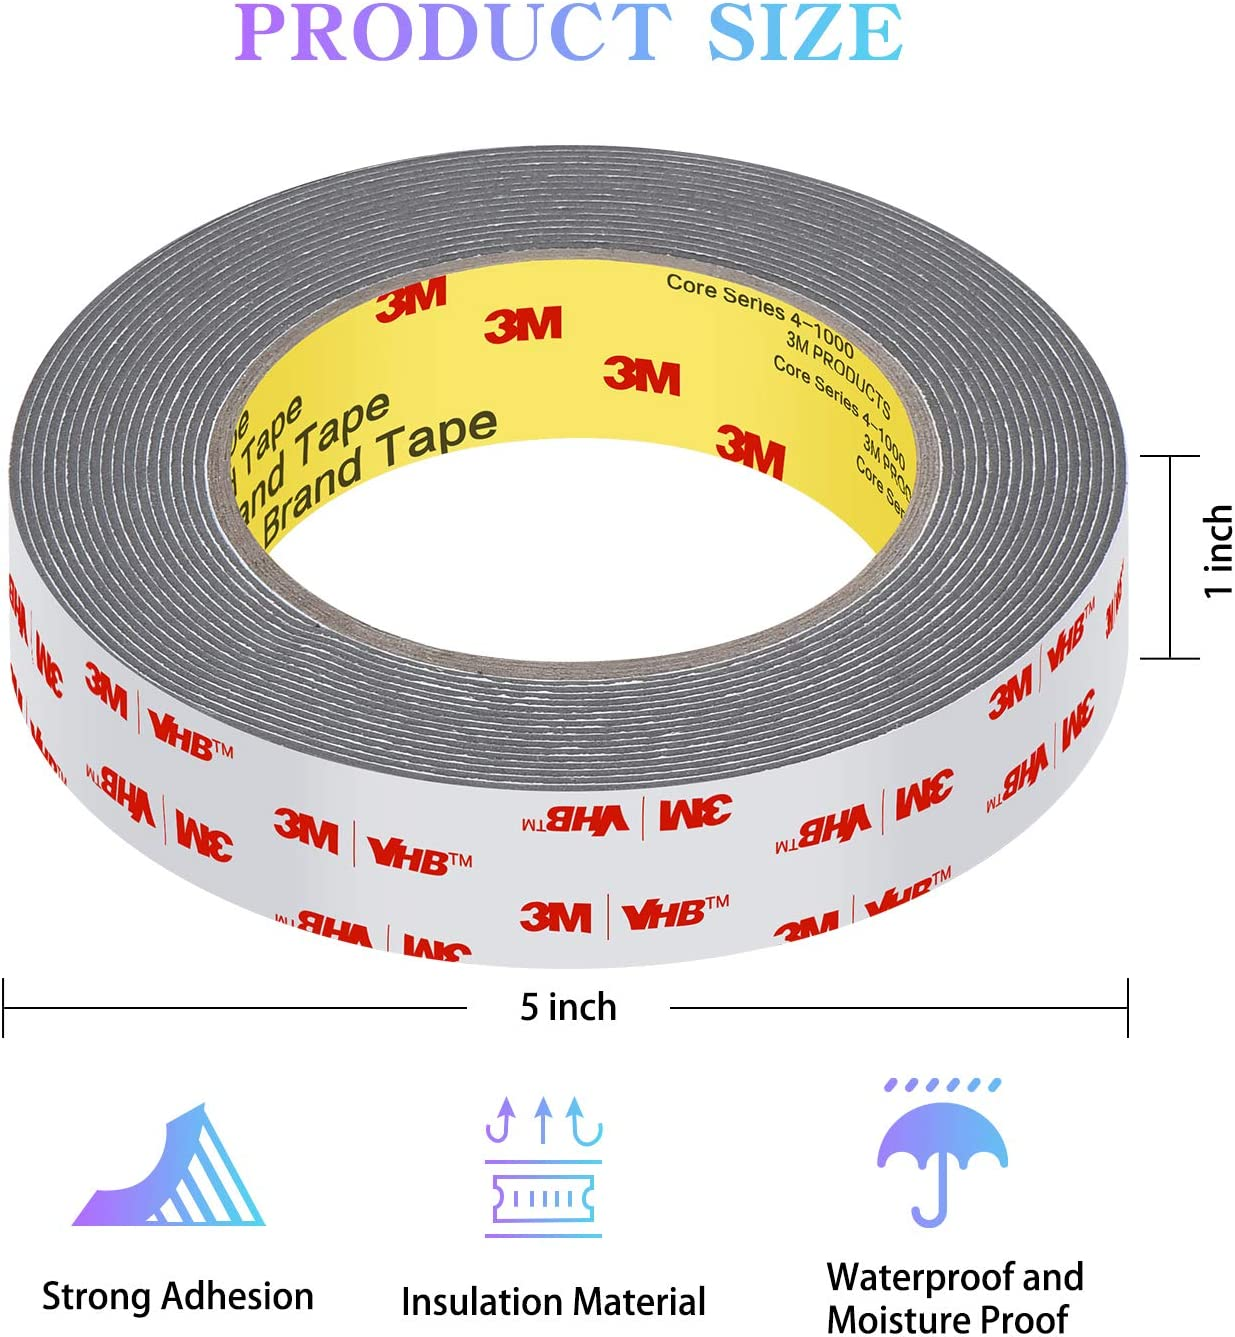 Easy Peel Strong Adhesive 3M Foam Tape 32FT Length,1.1mm Thickness,0.5inch Width,Waterproof Mounting Tape for Car Home and Office Decor 3M Heavy Duty Double Sided Tape